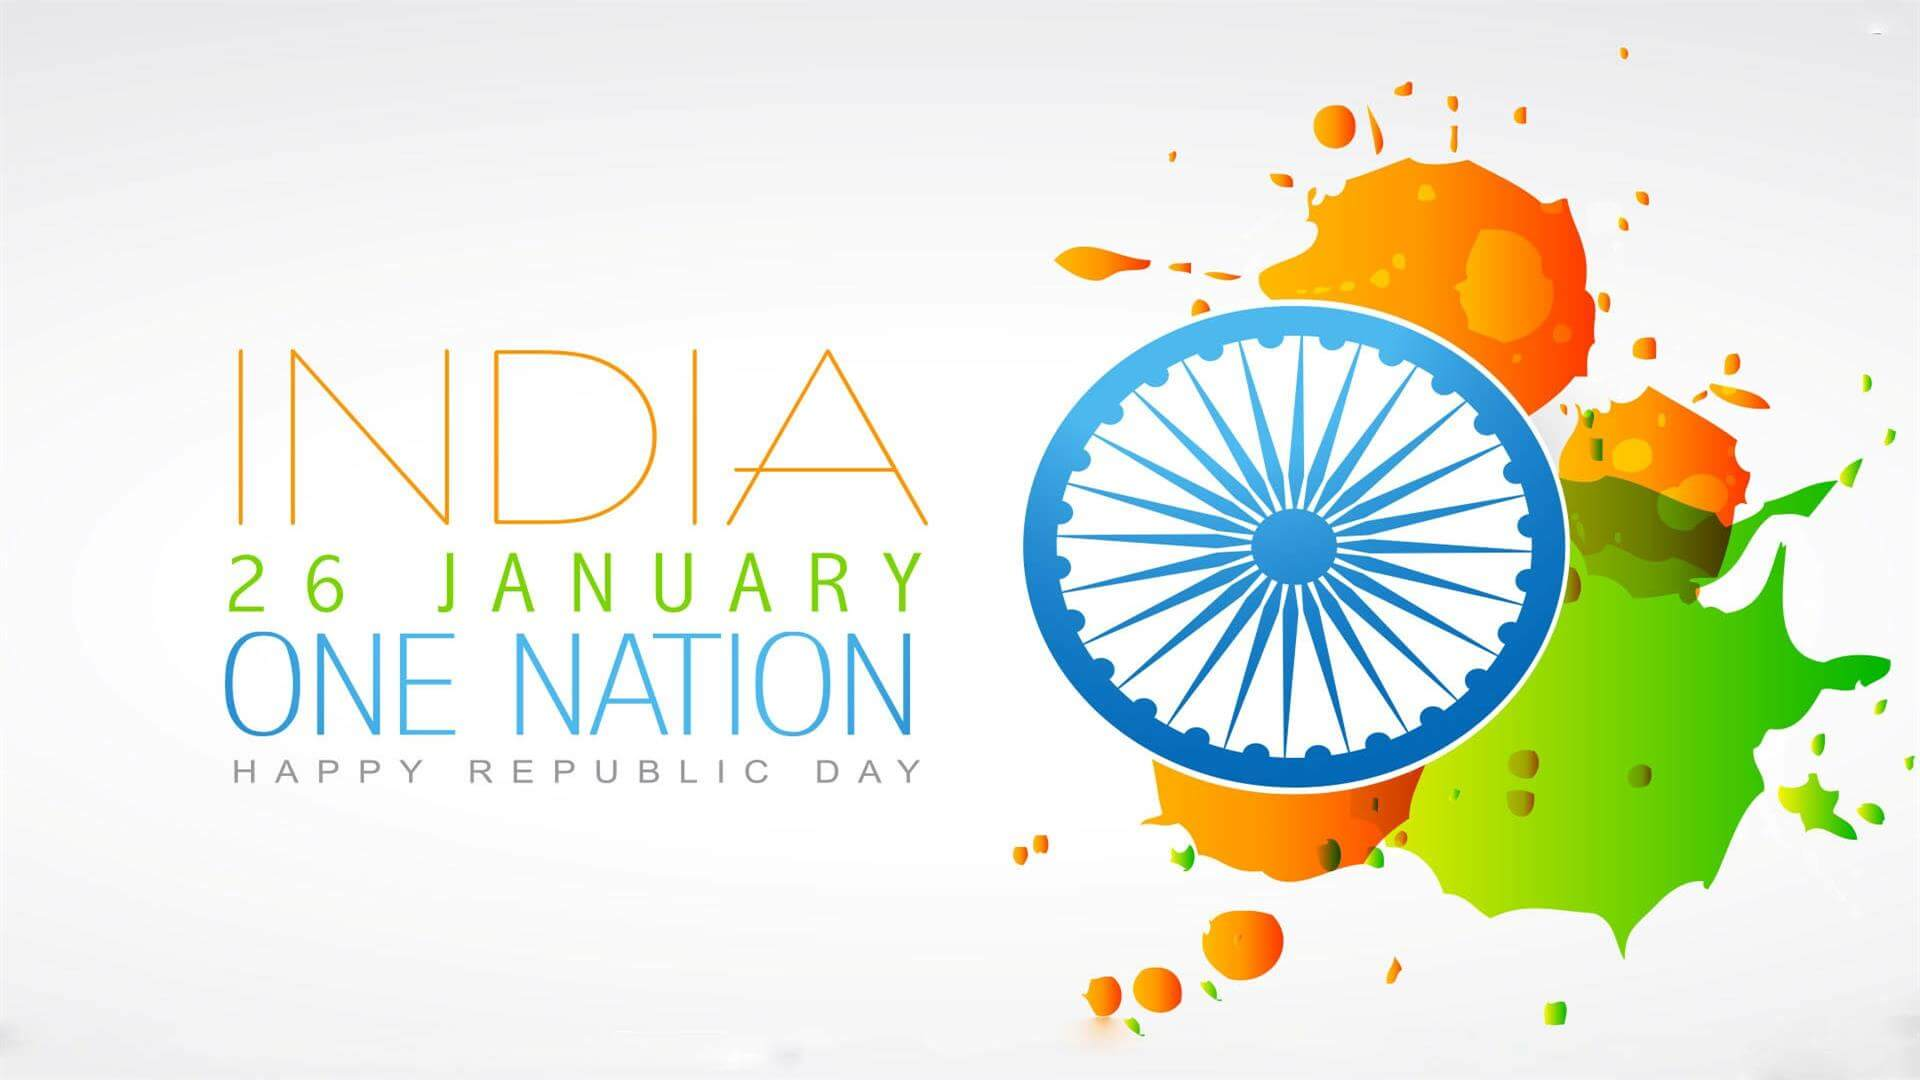 Republic Day Images for Drawing